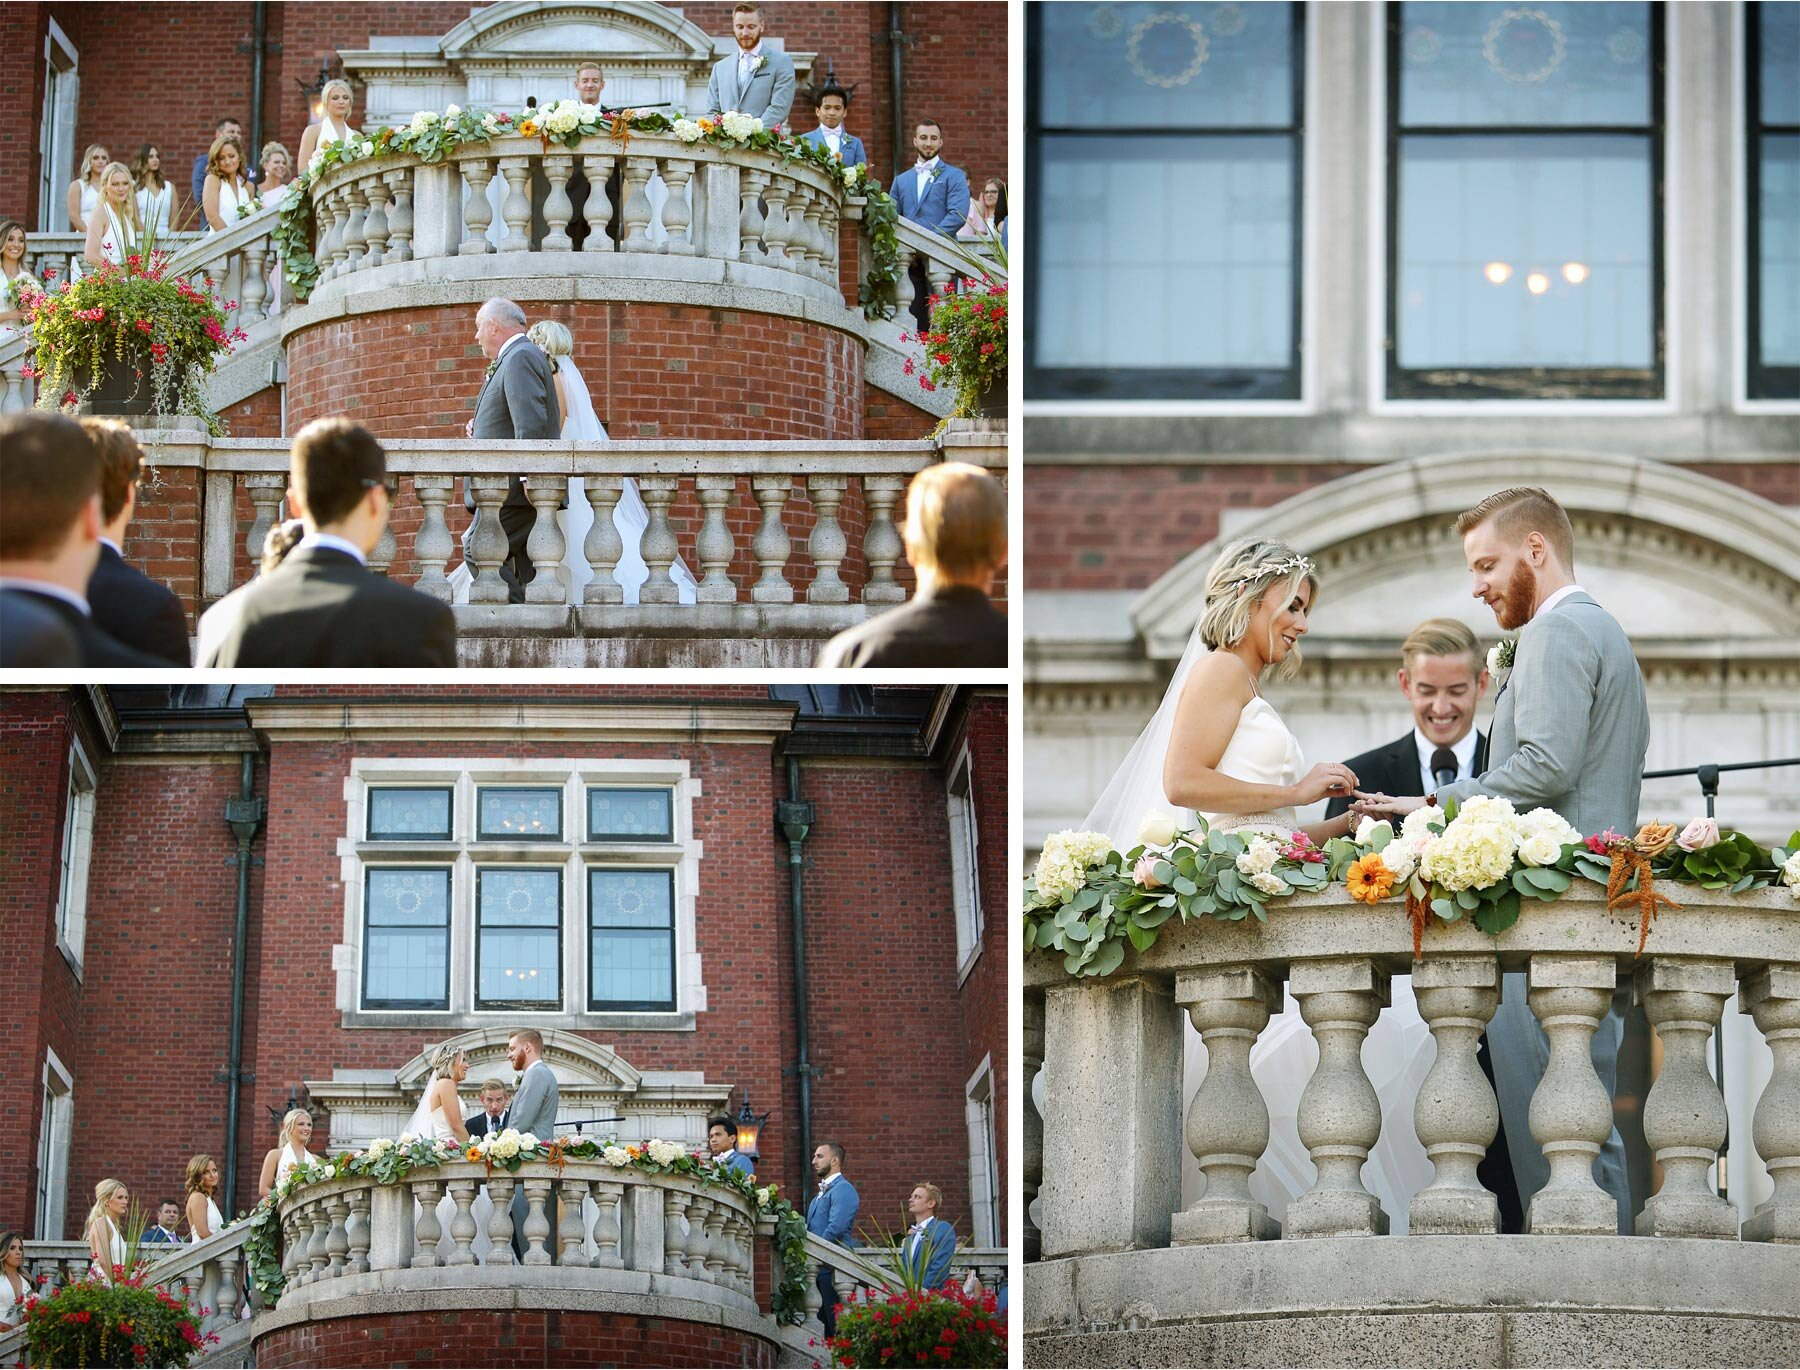 14-Vick-Photography-Wedding-Duluth-Minnesota-Glensheen-Mansion-Ceremony-Outdoor-Stairs-Catherine-and-John.jpg